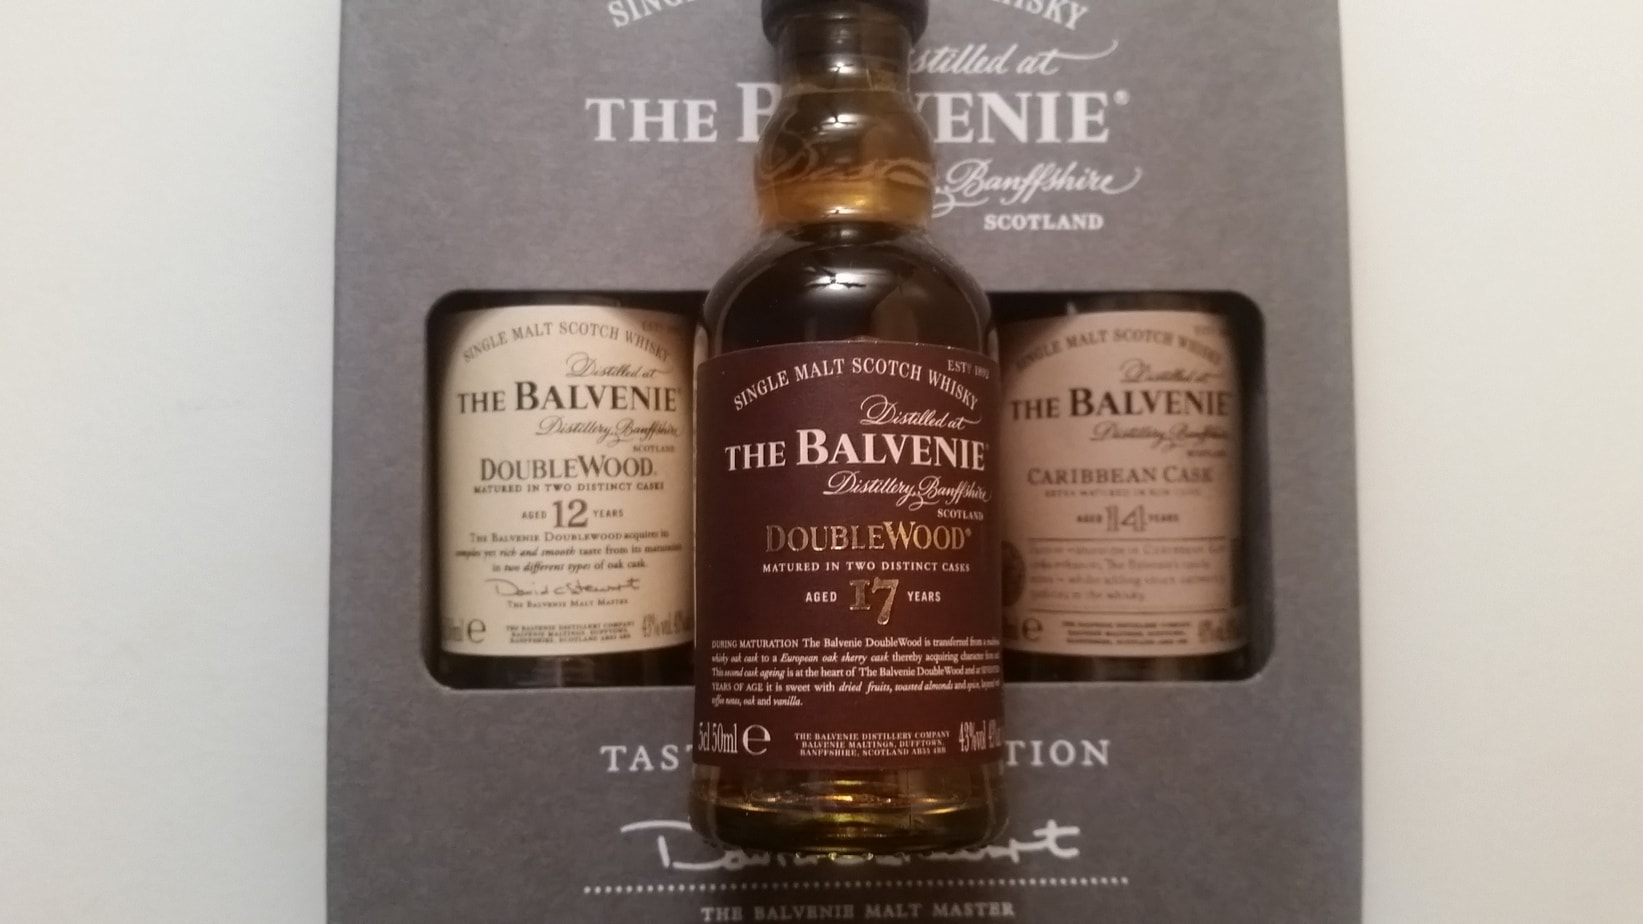 A miniature bottle of The Balvenie Doublewood 17